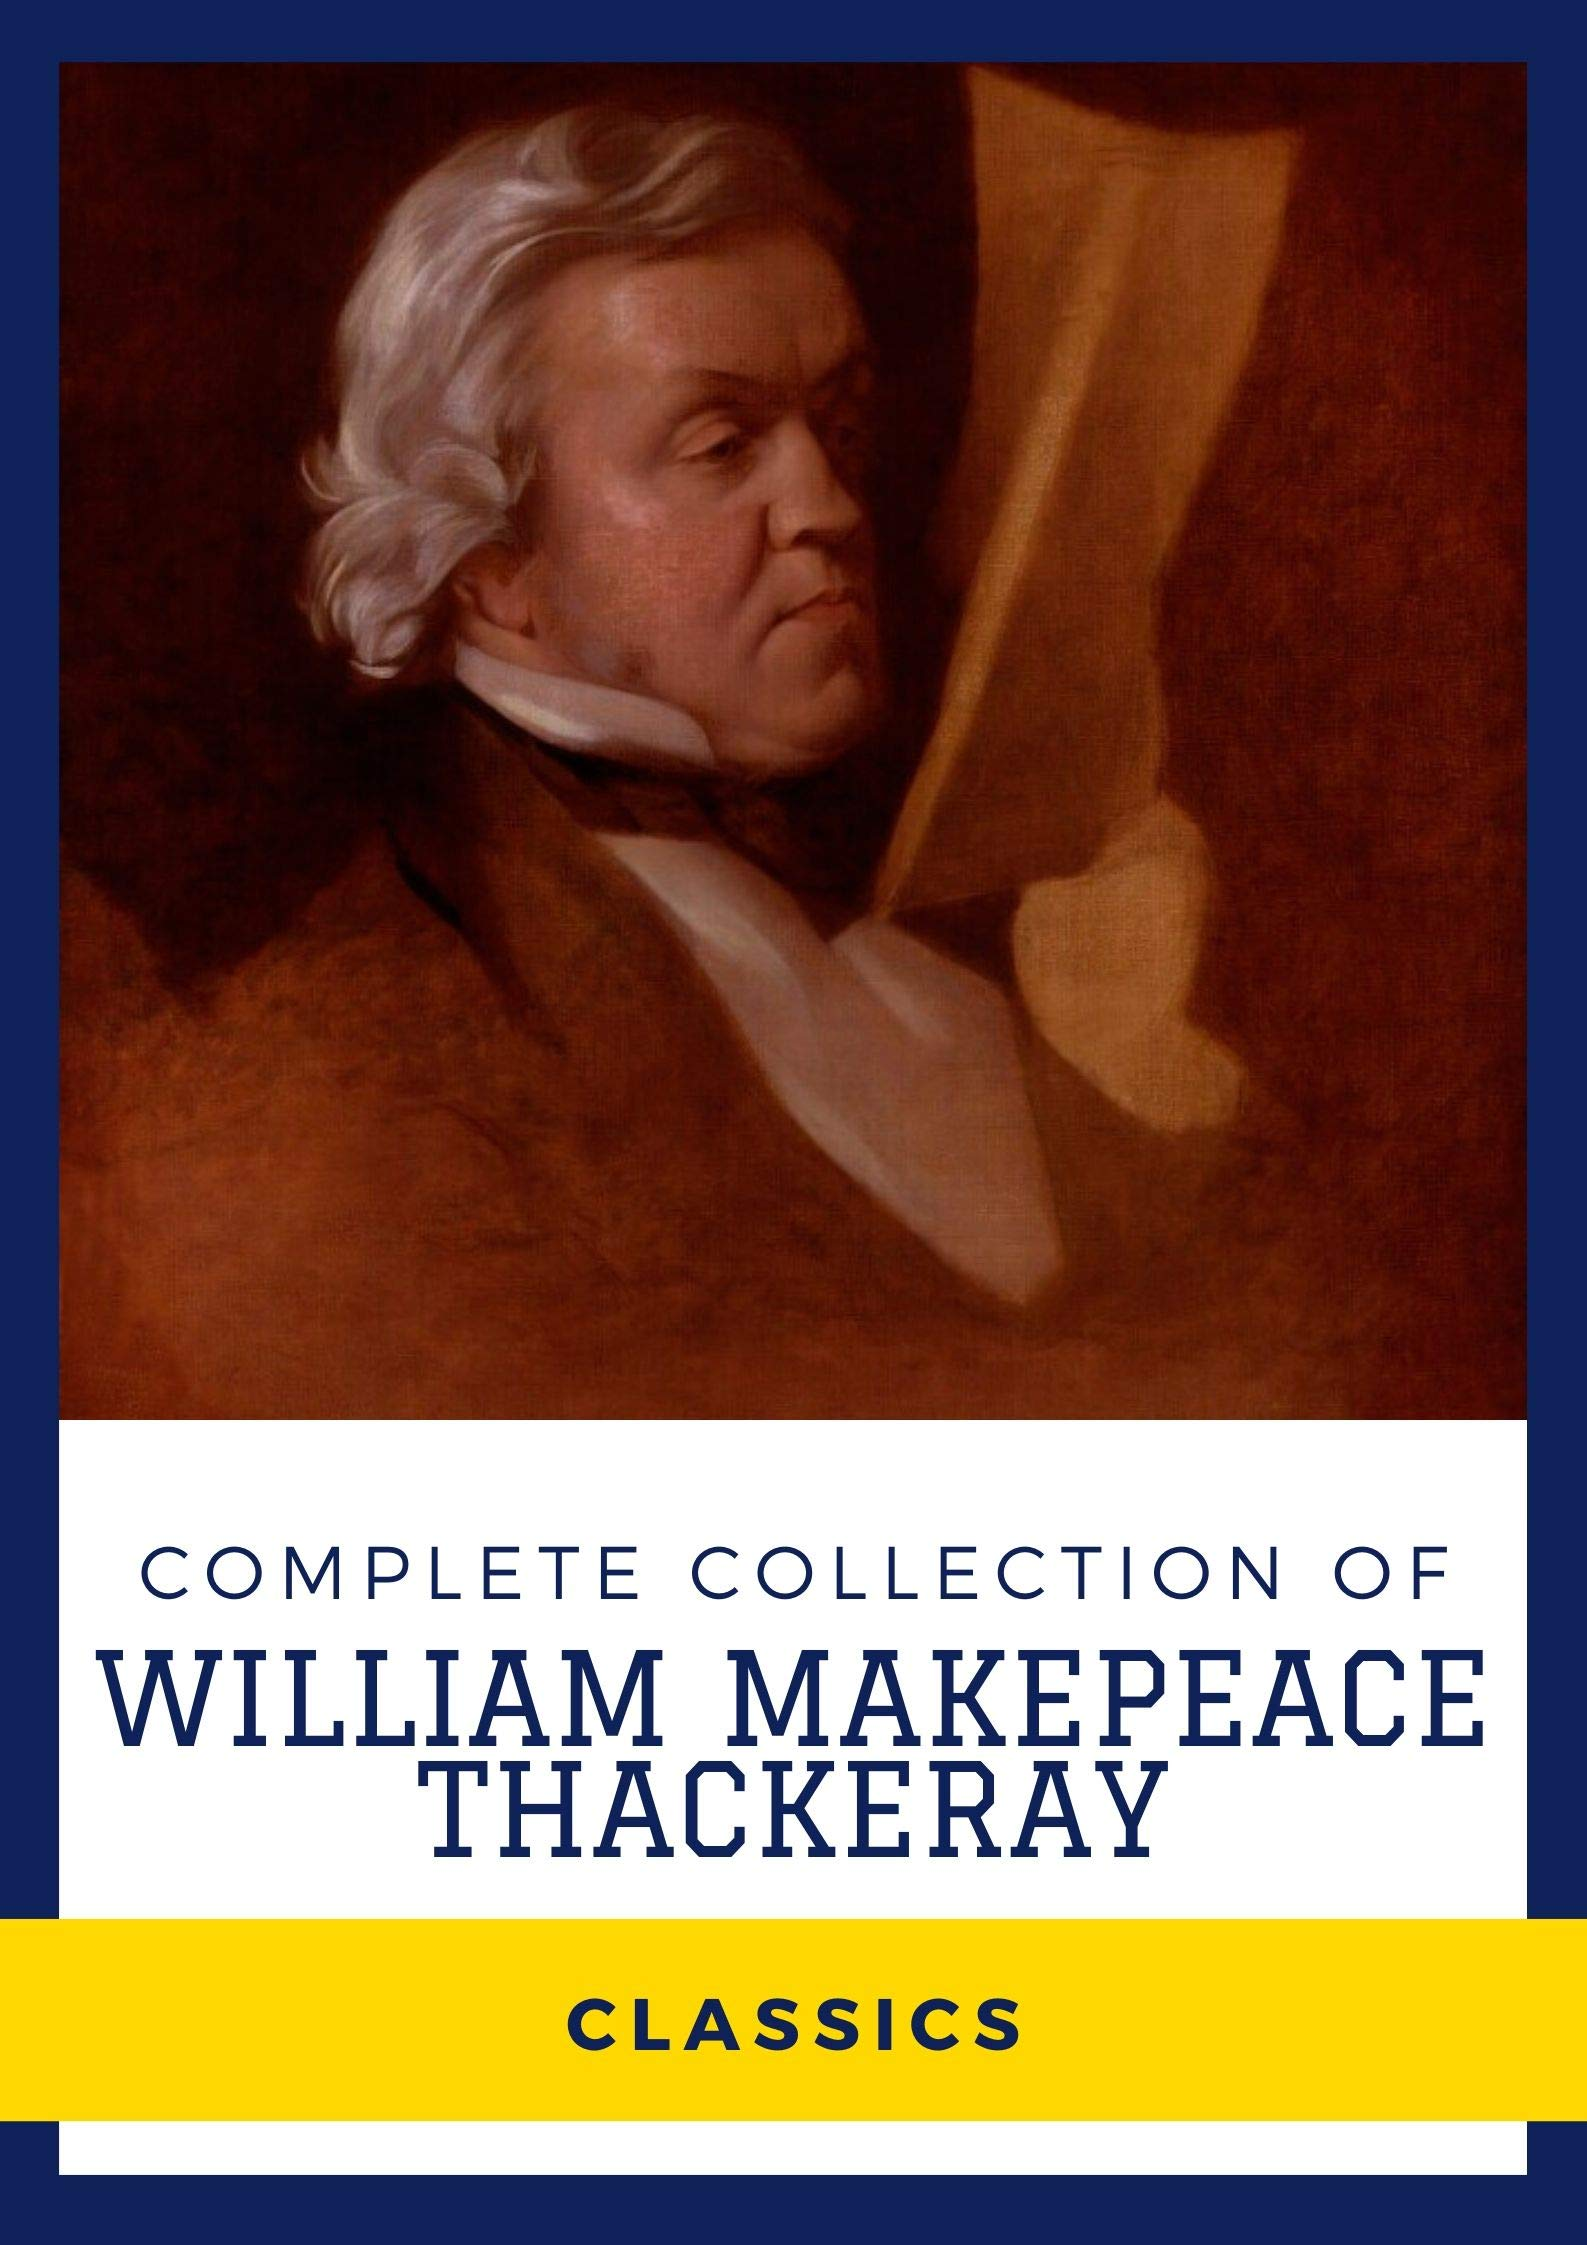 Complete Collection of William Makepeace Thackeray